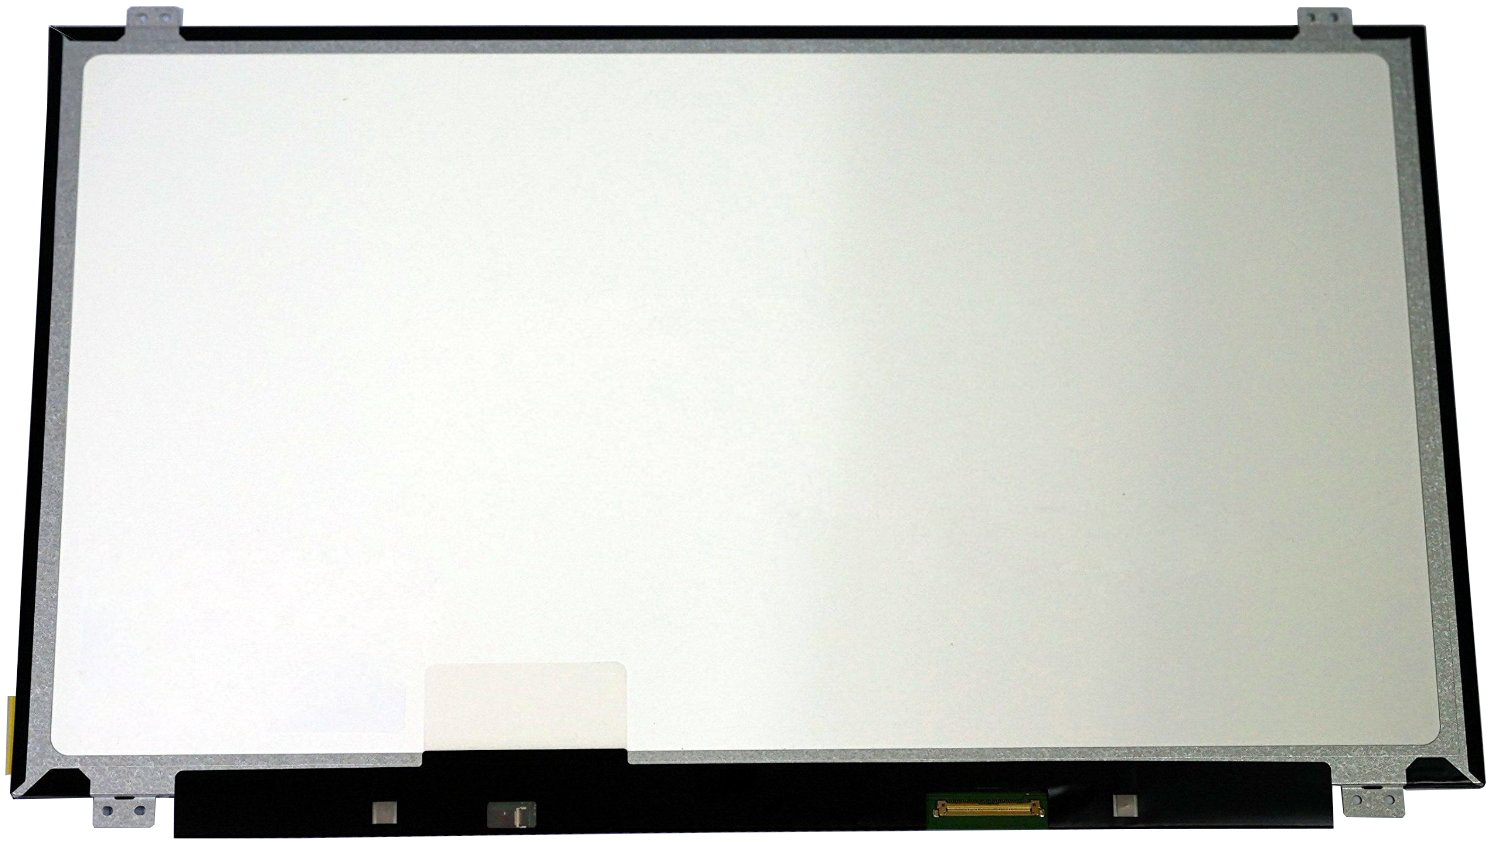 QuYing Laptop LCD Screen for Acer Aspire V5-551G V5-551 V5-531G V5-531 V5-571 V5-571G ZR7 PEW71 (15.6 inch 1366x768 40pin N) quying laptop lcd screen for acer aspire ethos 5951g timeline 5745 7531 series 15 6 inch 1366x768 40pin n